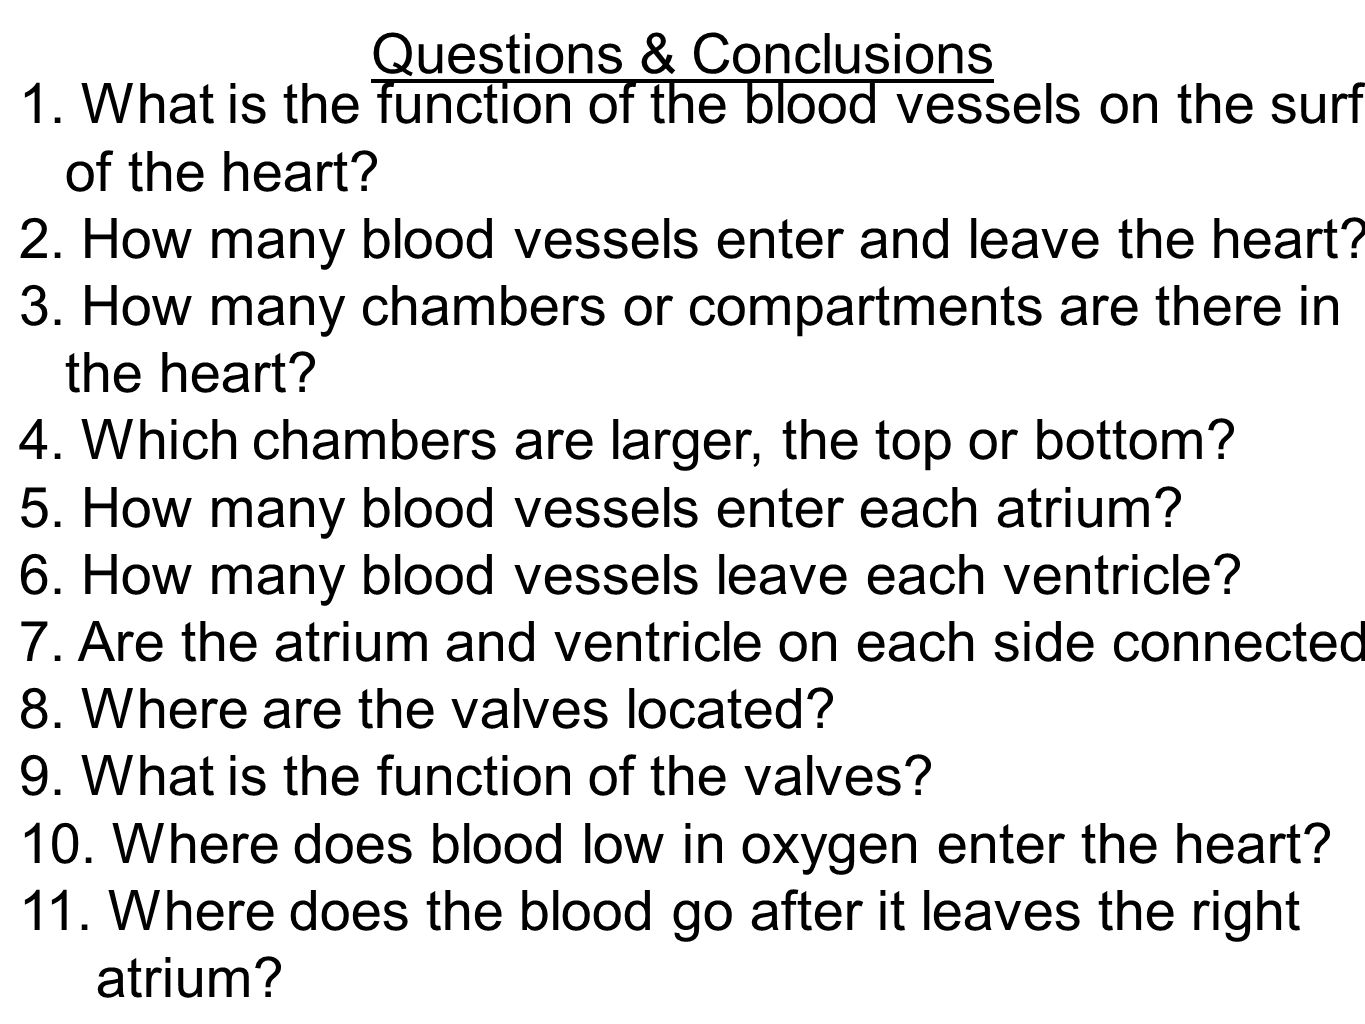 Questions & Conclusions 1. What is the function of the blood vessels on the surface of the heart? 2. How many blood vessels enter and leave the heart?